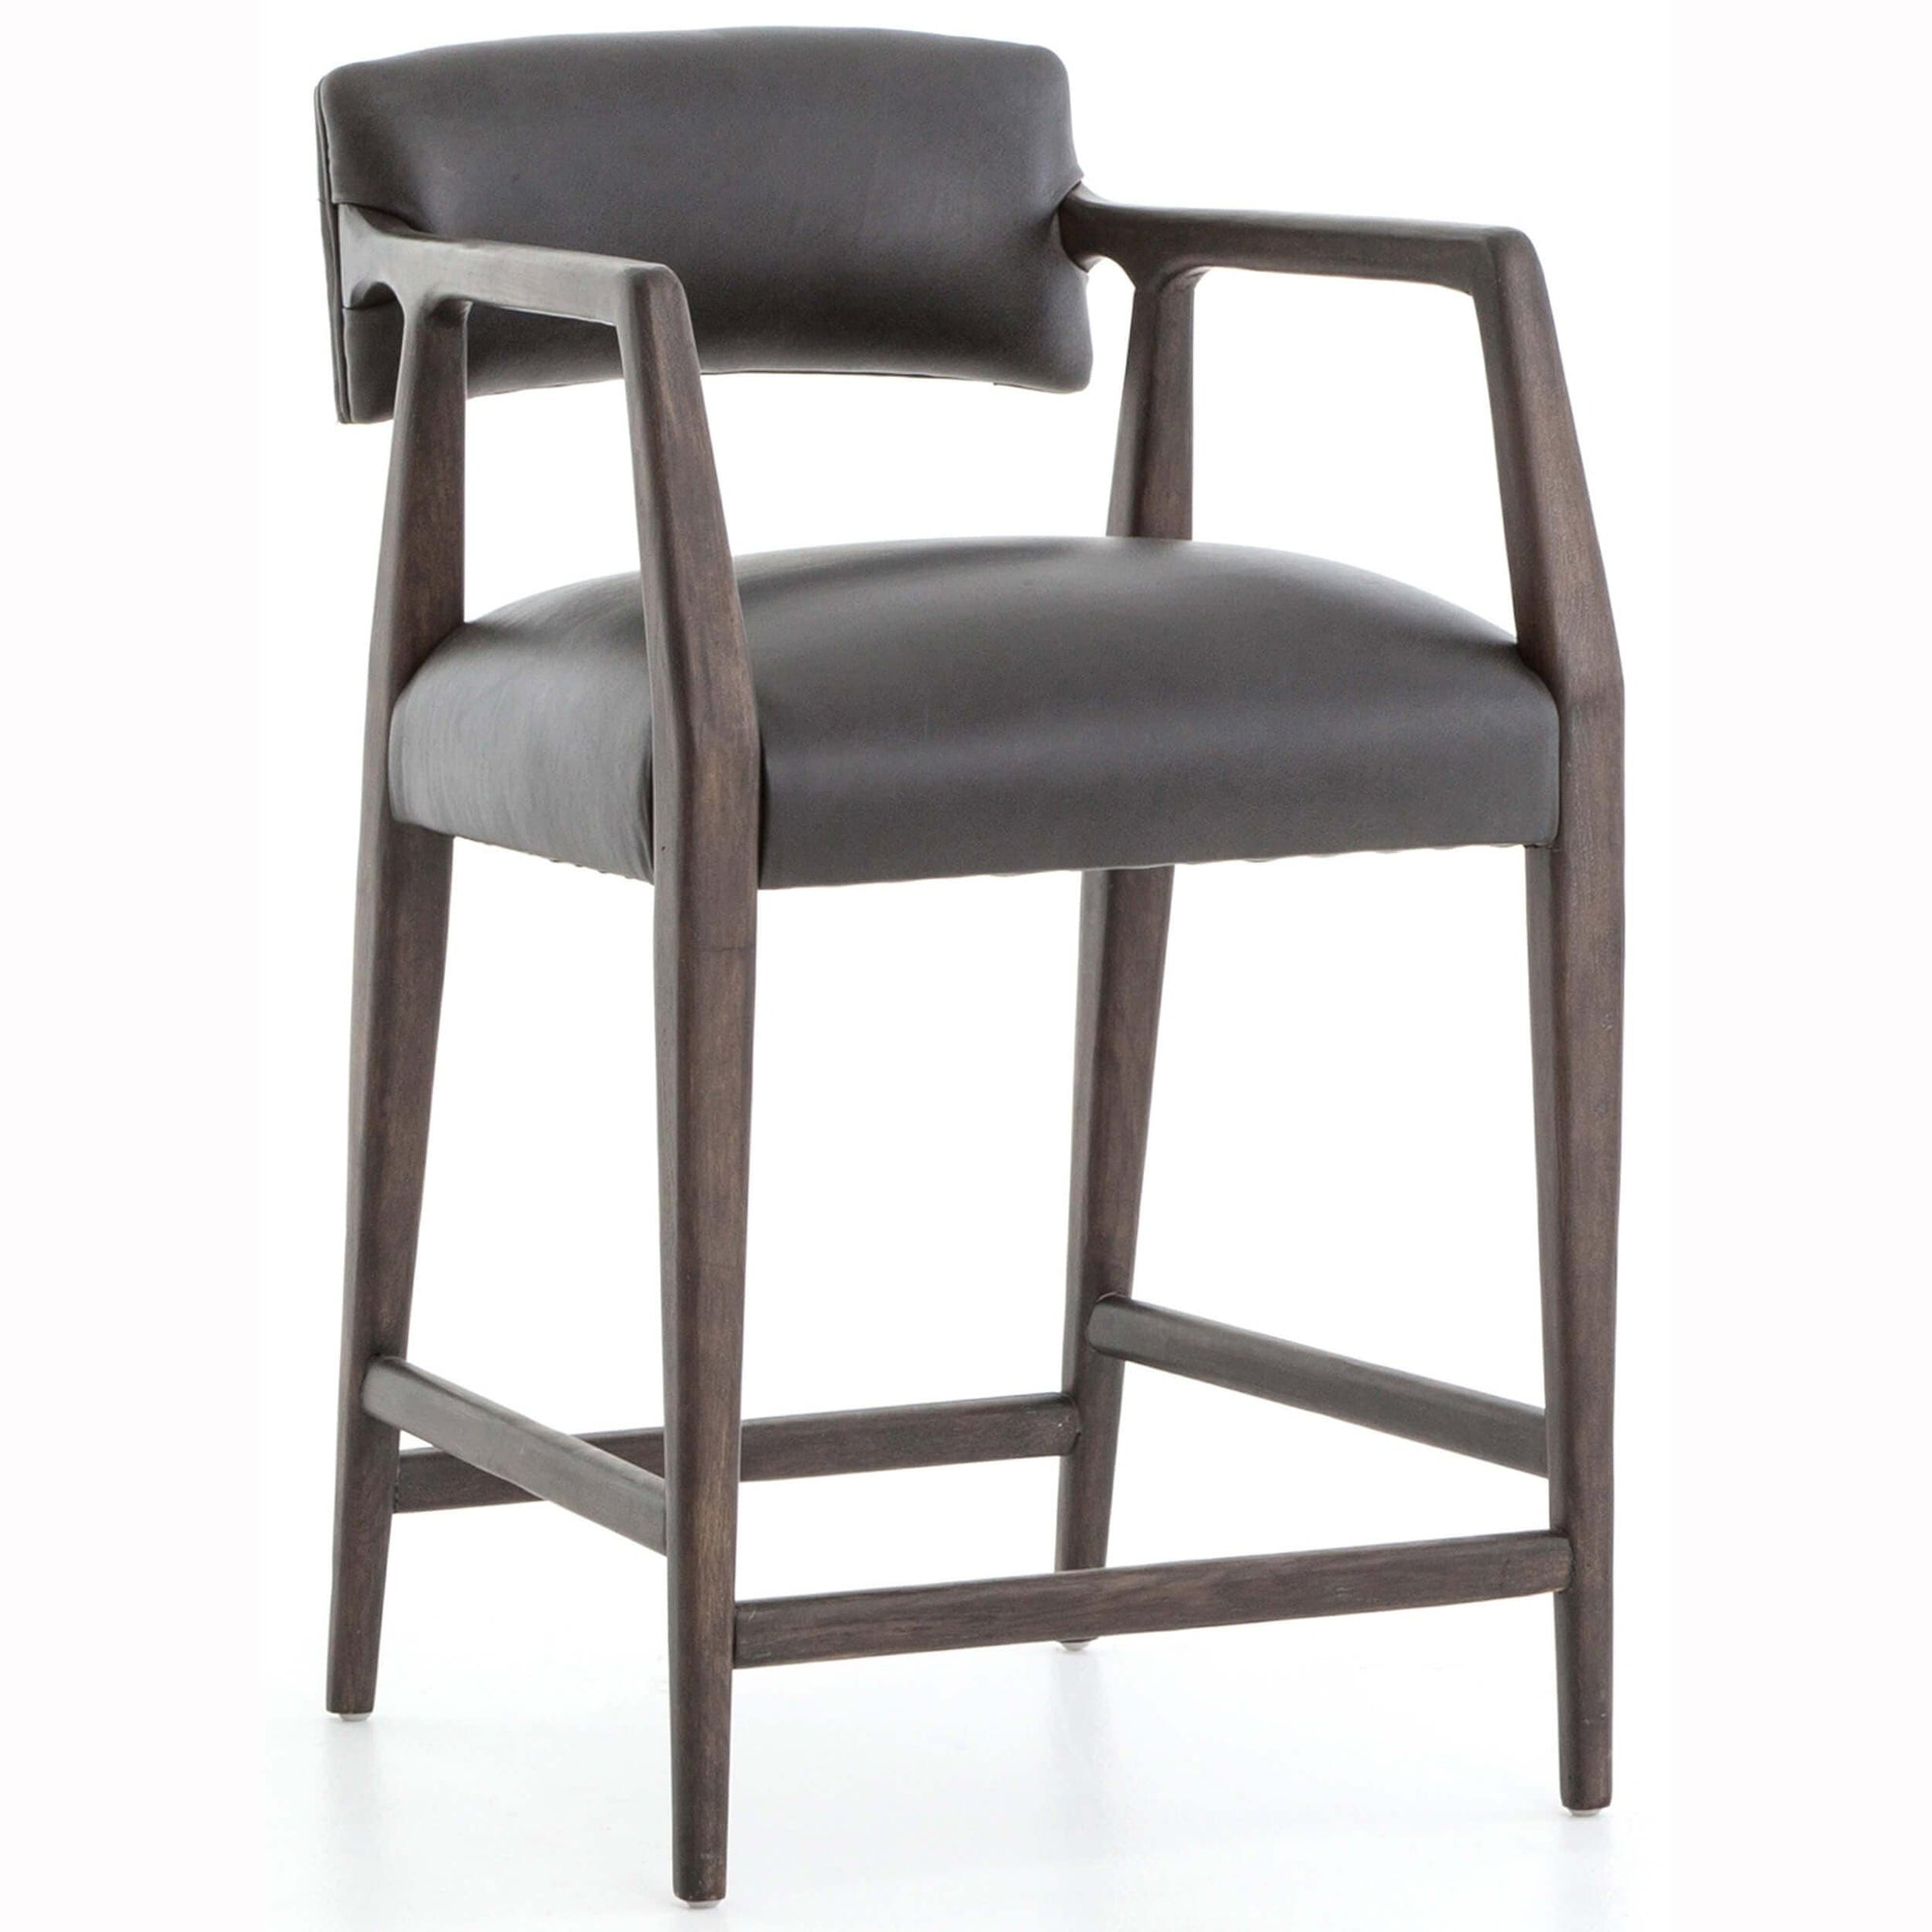 Swell Tyler Leather Counter Stool Chaps Ebony High Fashion Home Caraccident5 Cool Chair Designs And Ideas Caraccident5Info